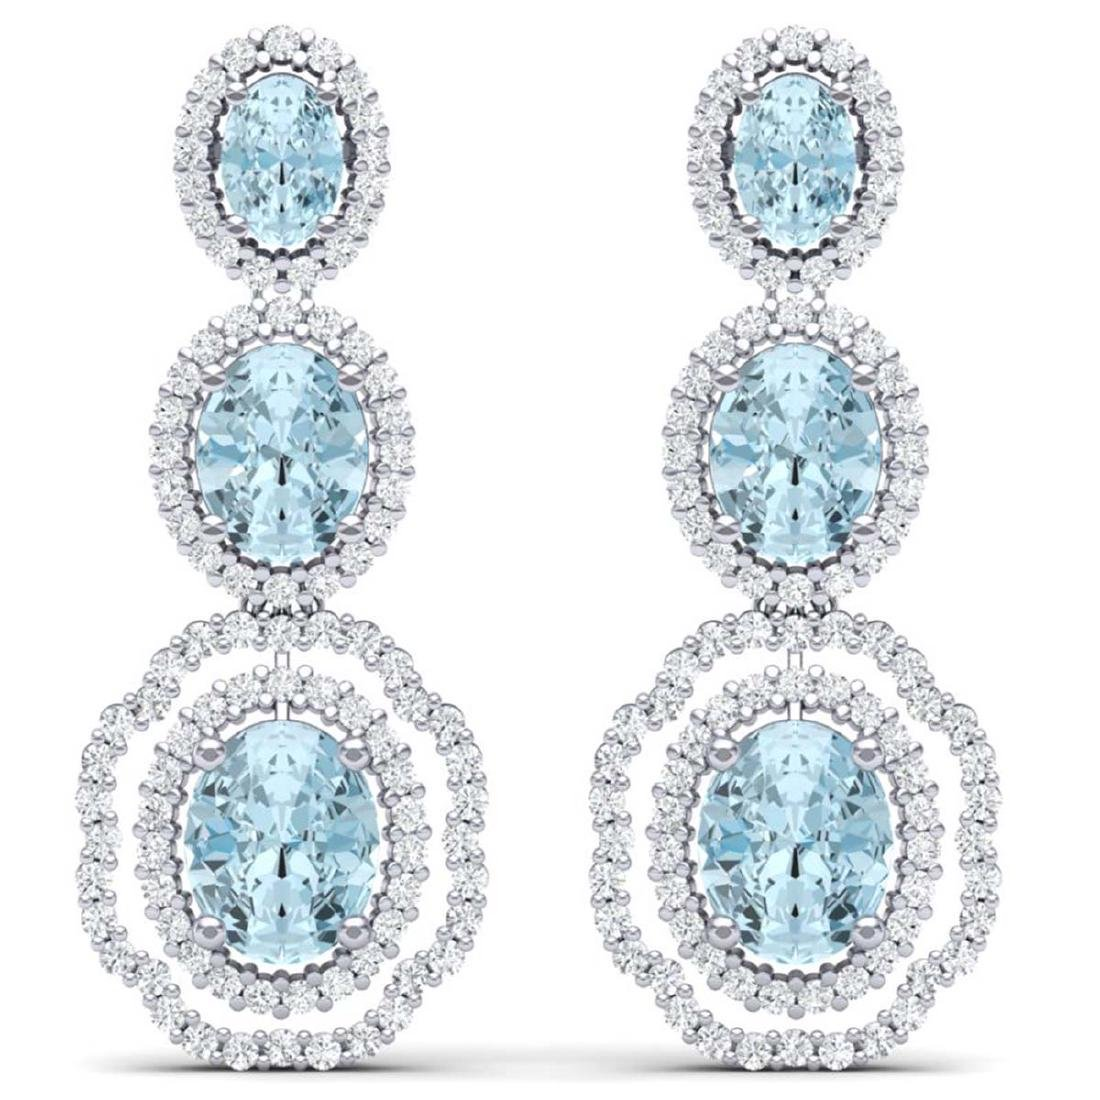 17.46 CTW Royalty Sky Topaz & VS Diamond Earrings 18K